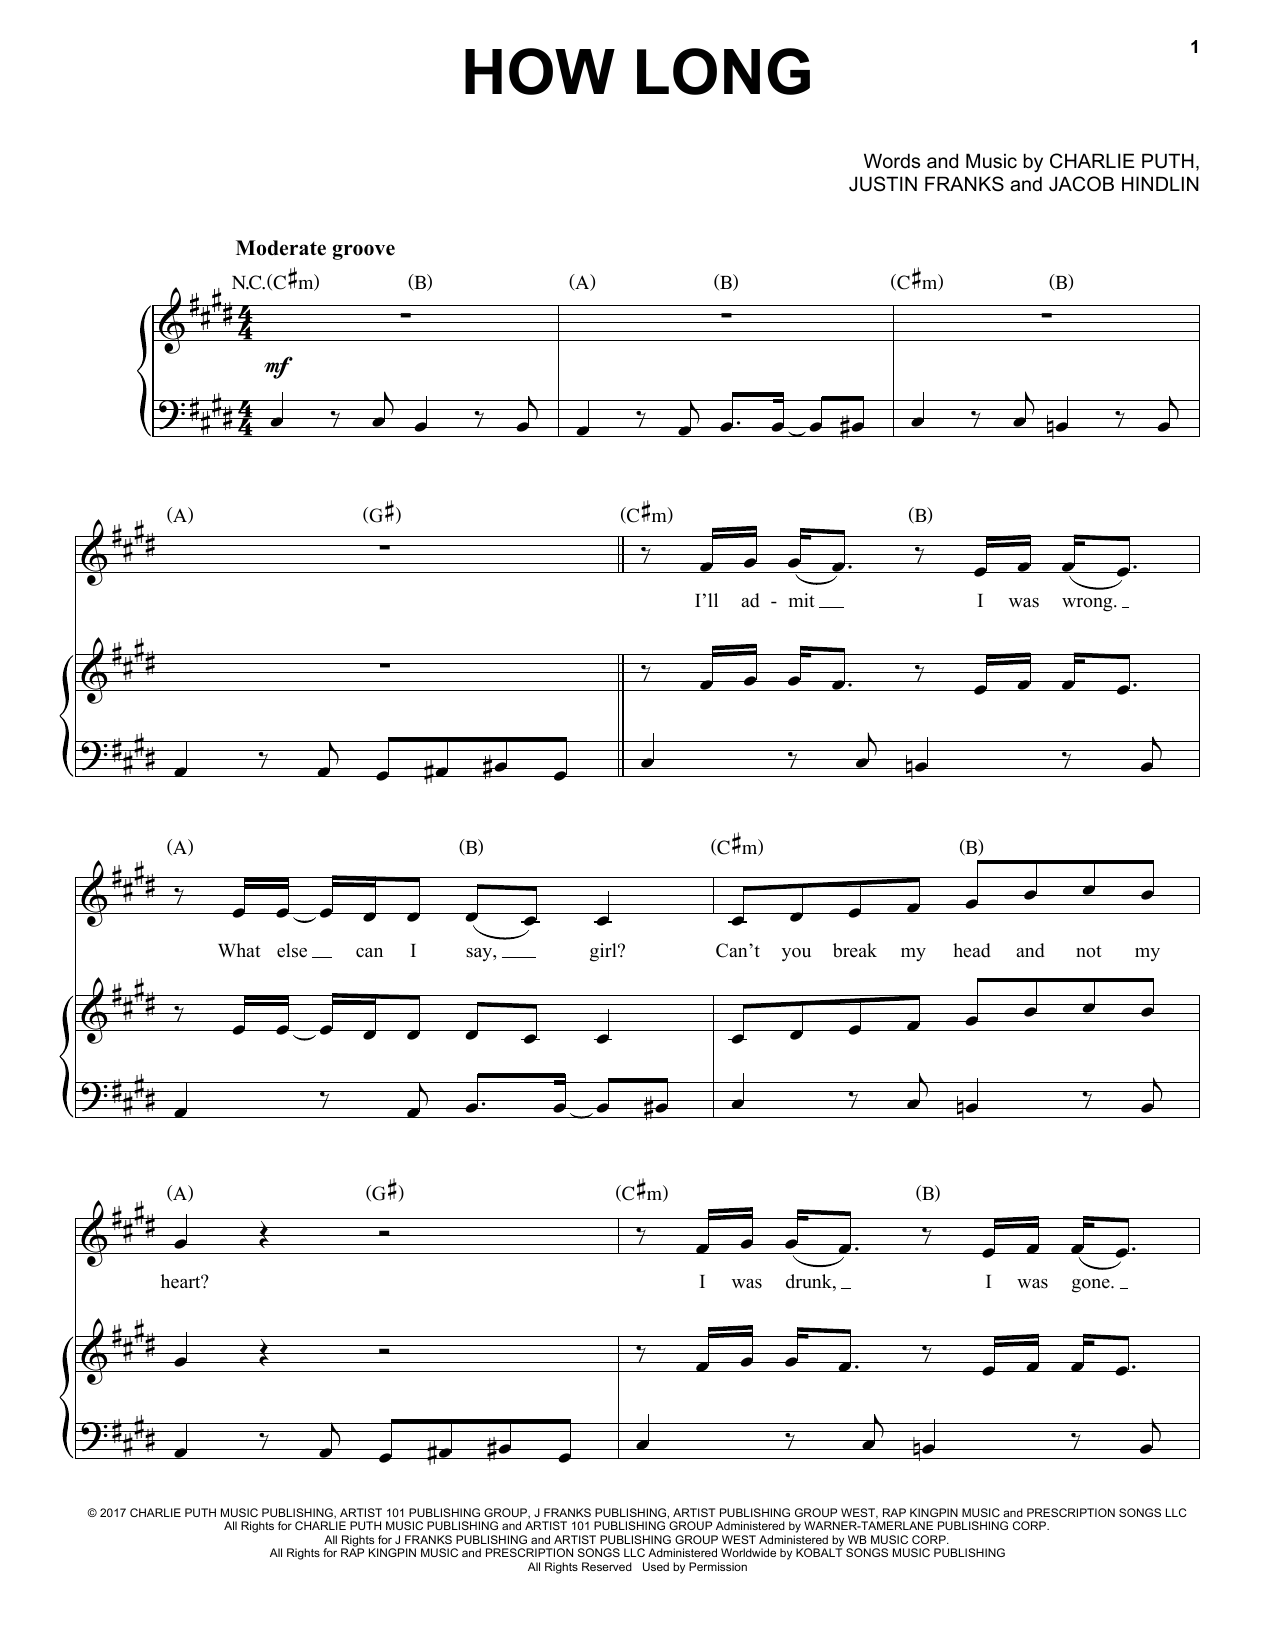 Charlie Puth How Long sheet music notes and chords